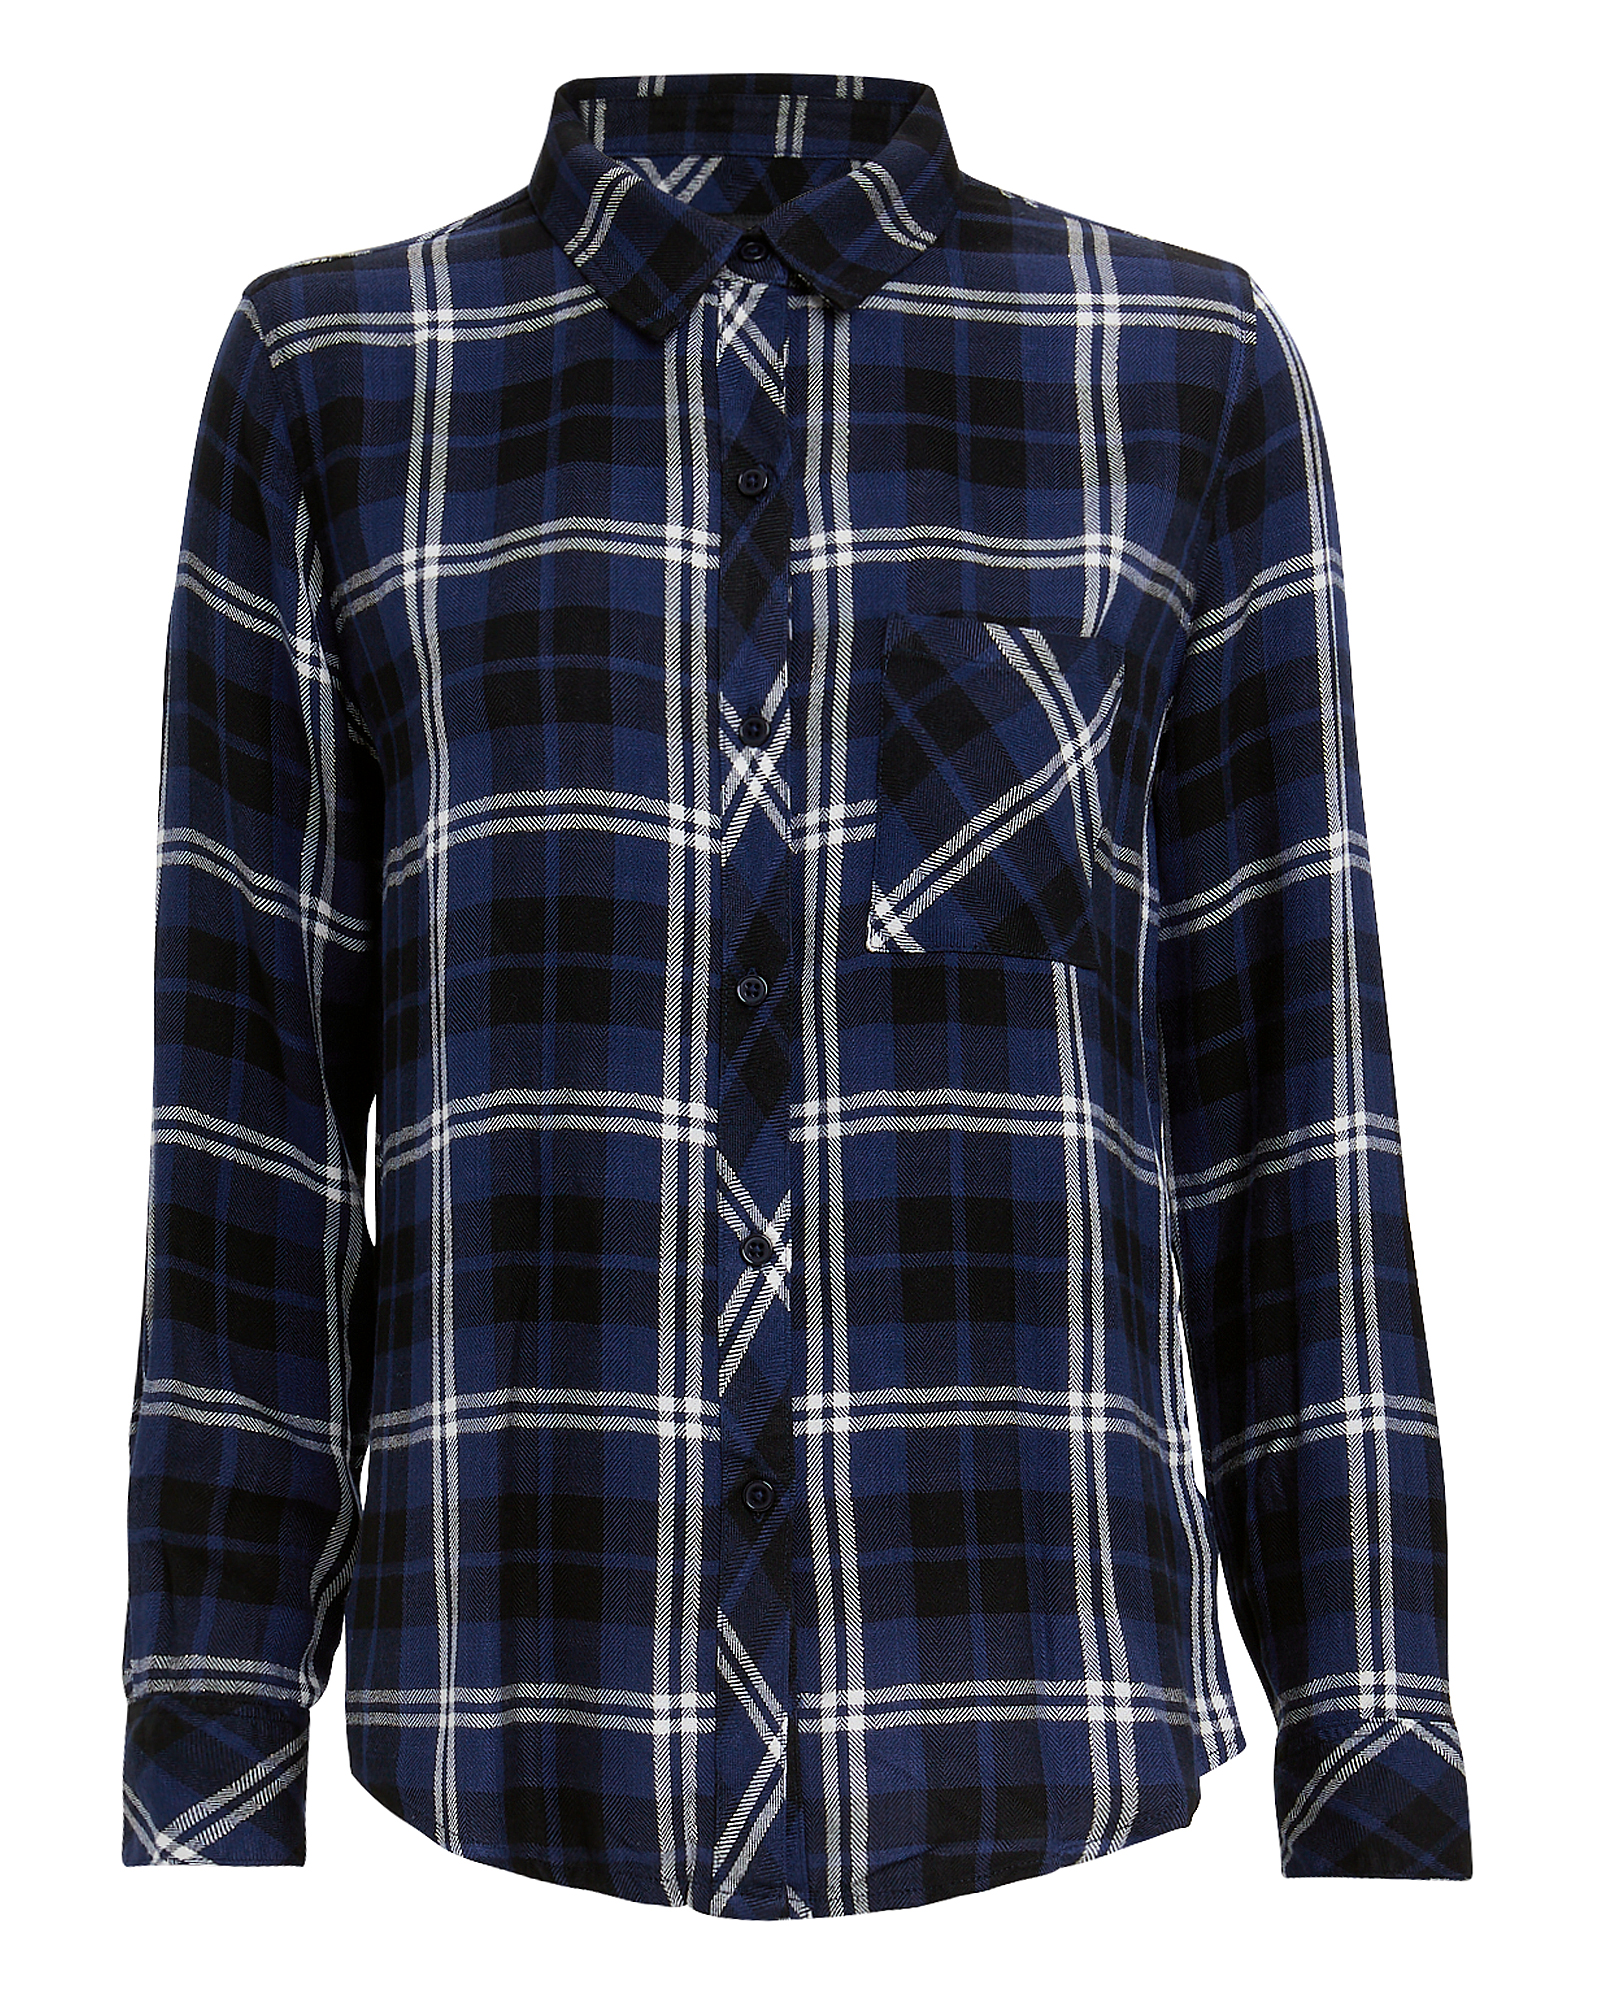 RAILS Hunter Navy Plaid Button Down Top in Navy Almond Tinsel